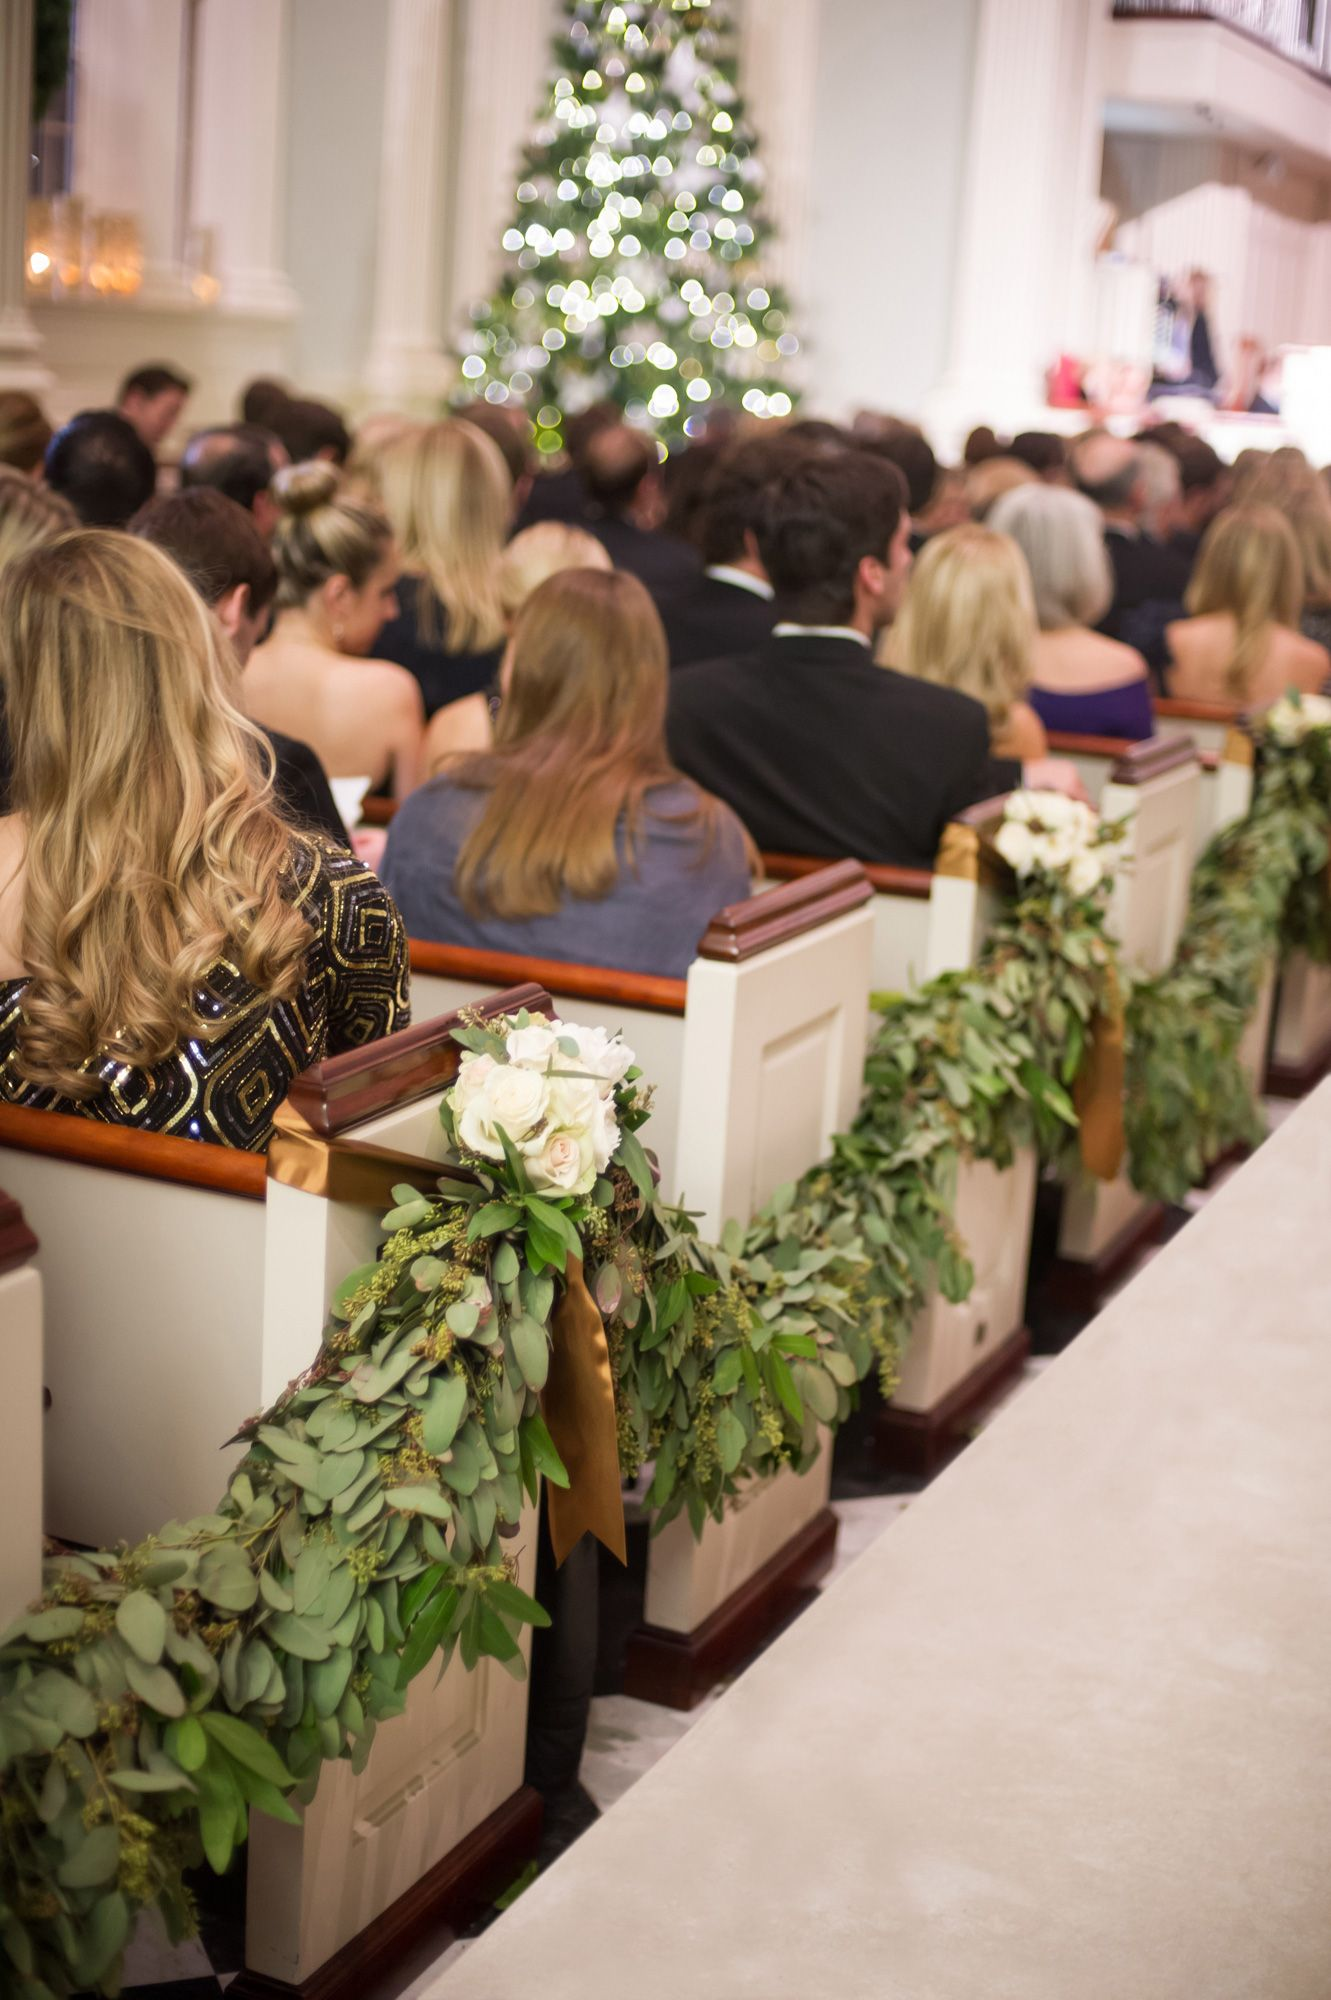 Green Garlands With White Roses On Church Pews Wedding Church Aisle